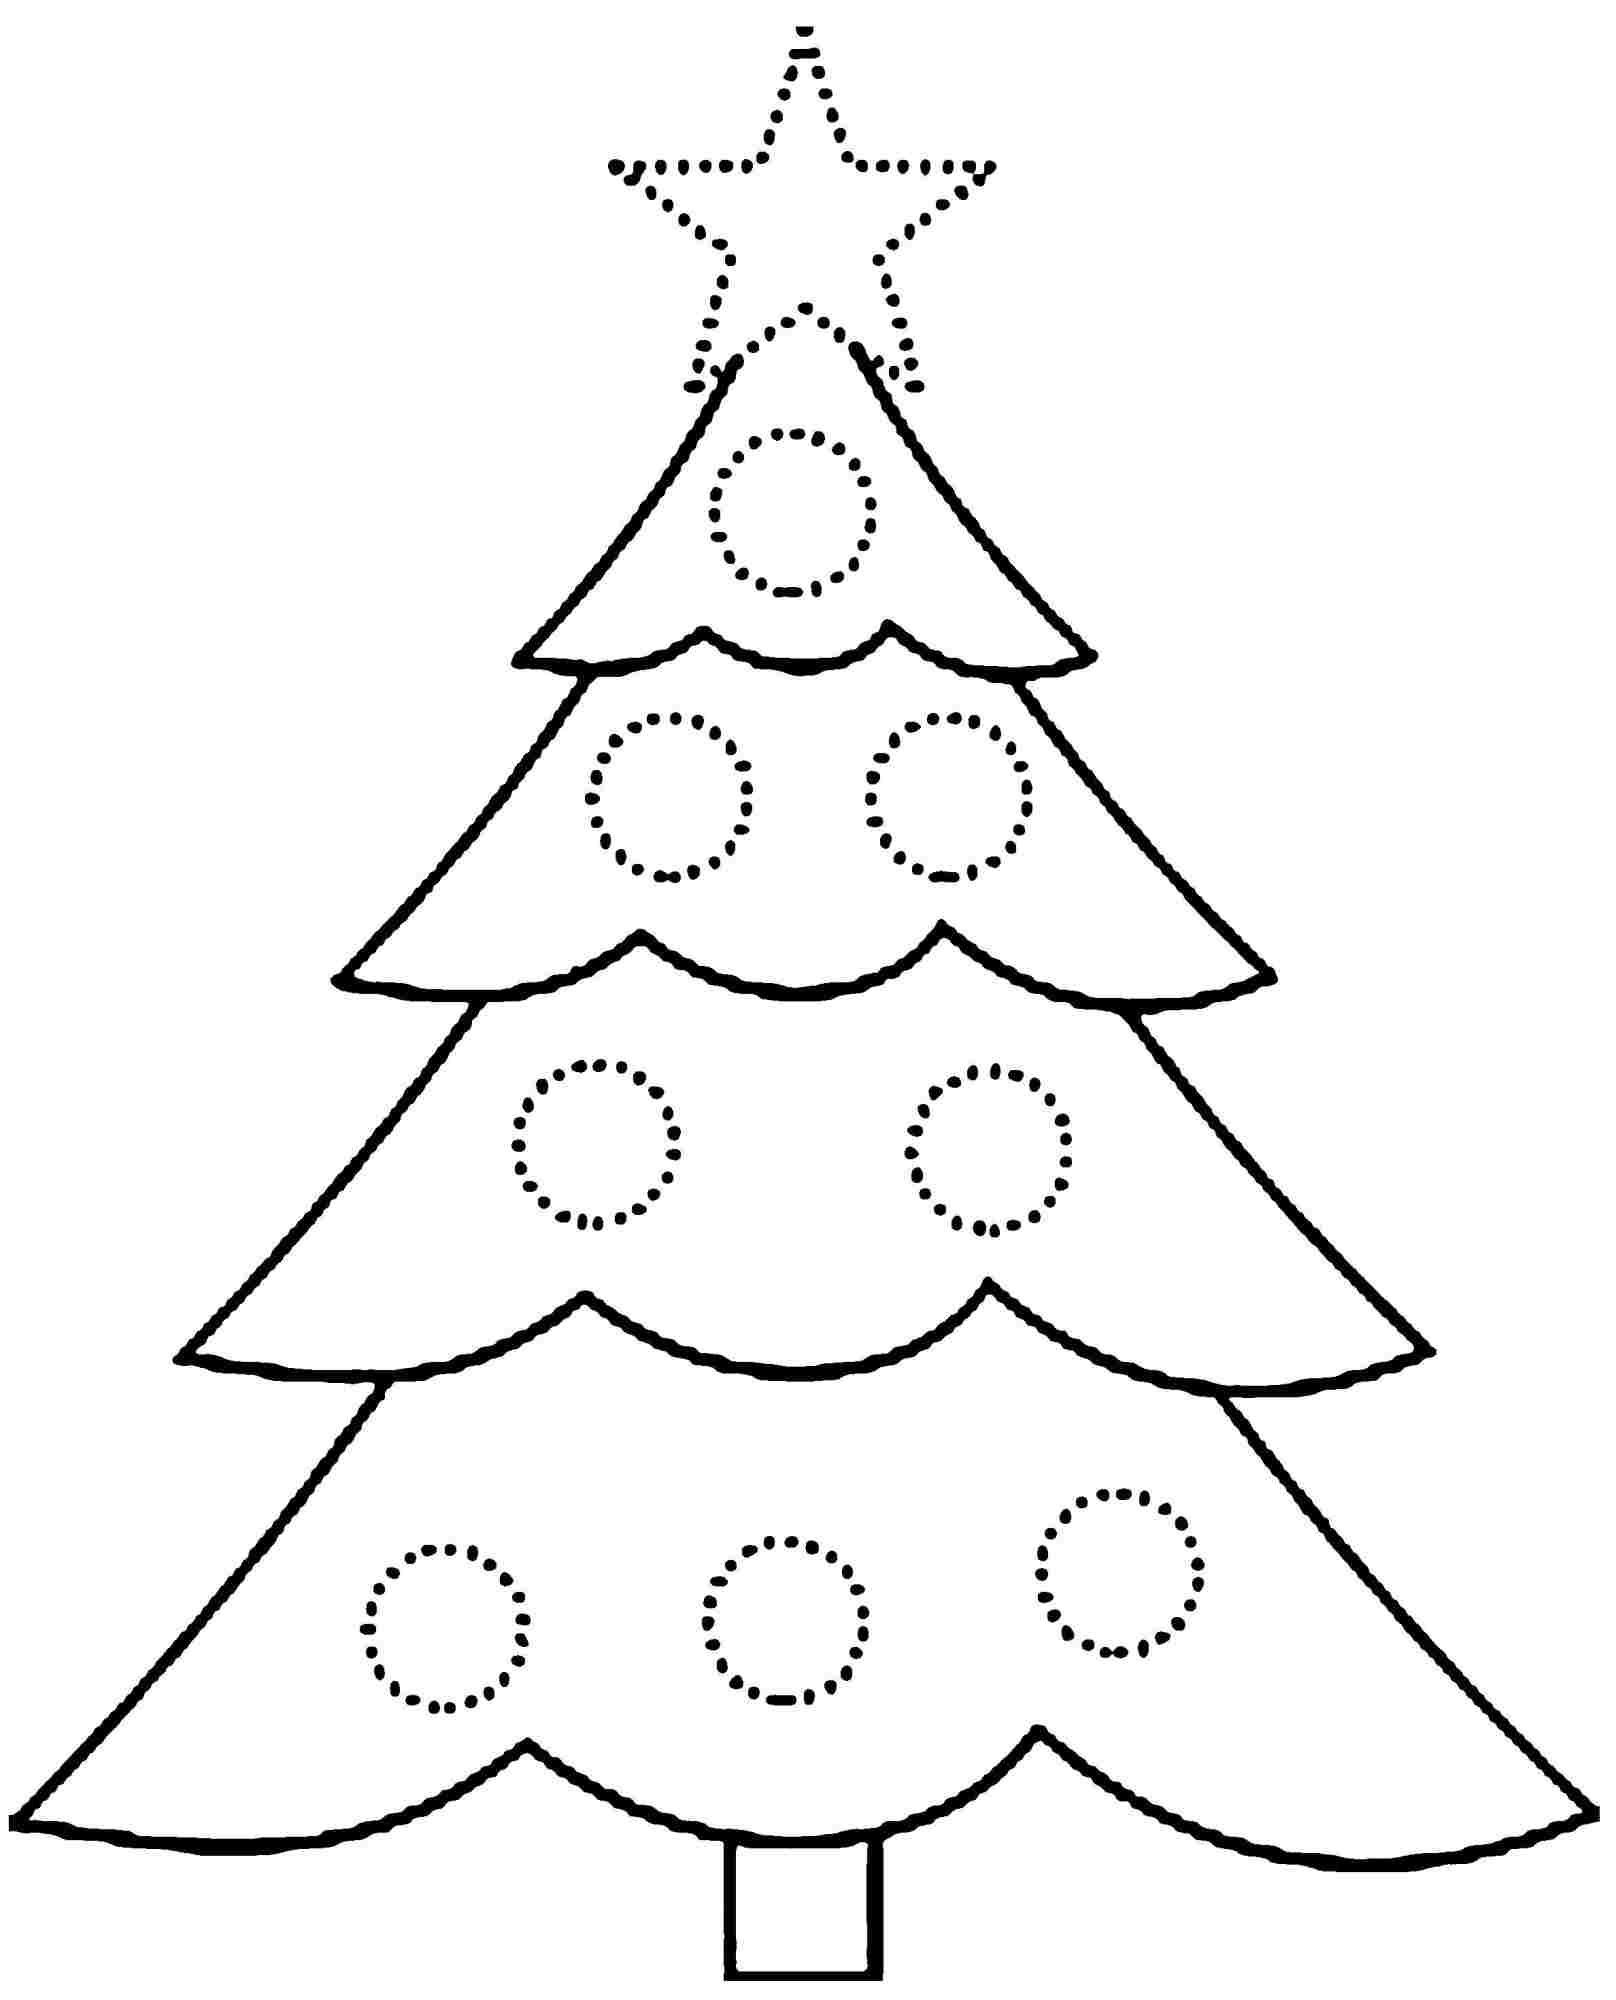 Printable Christmas Tree Coloring Pages Christmas Tree Coloring Page Printable Christmas Coloring Pages Christmas Tree Drawing